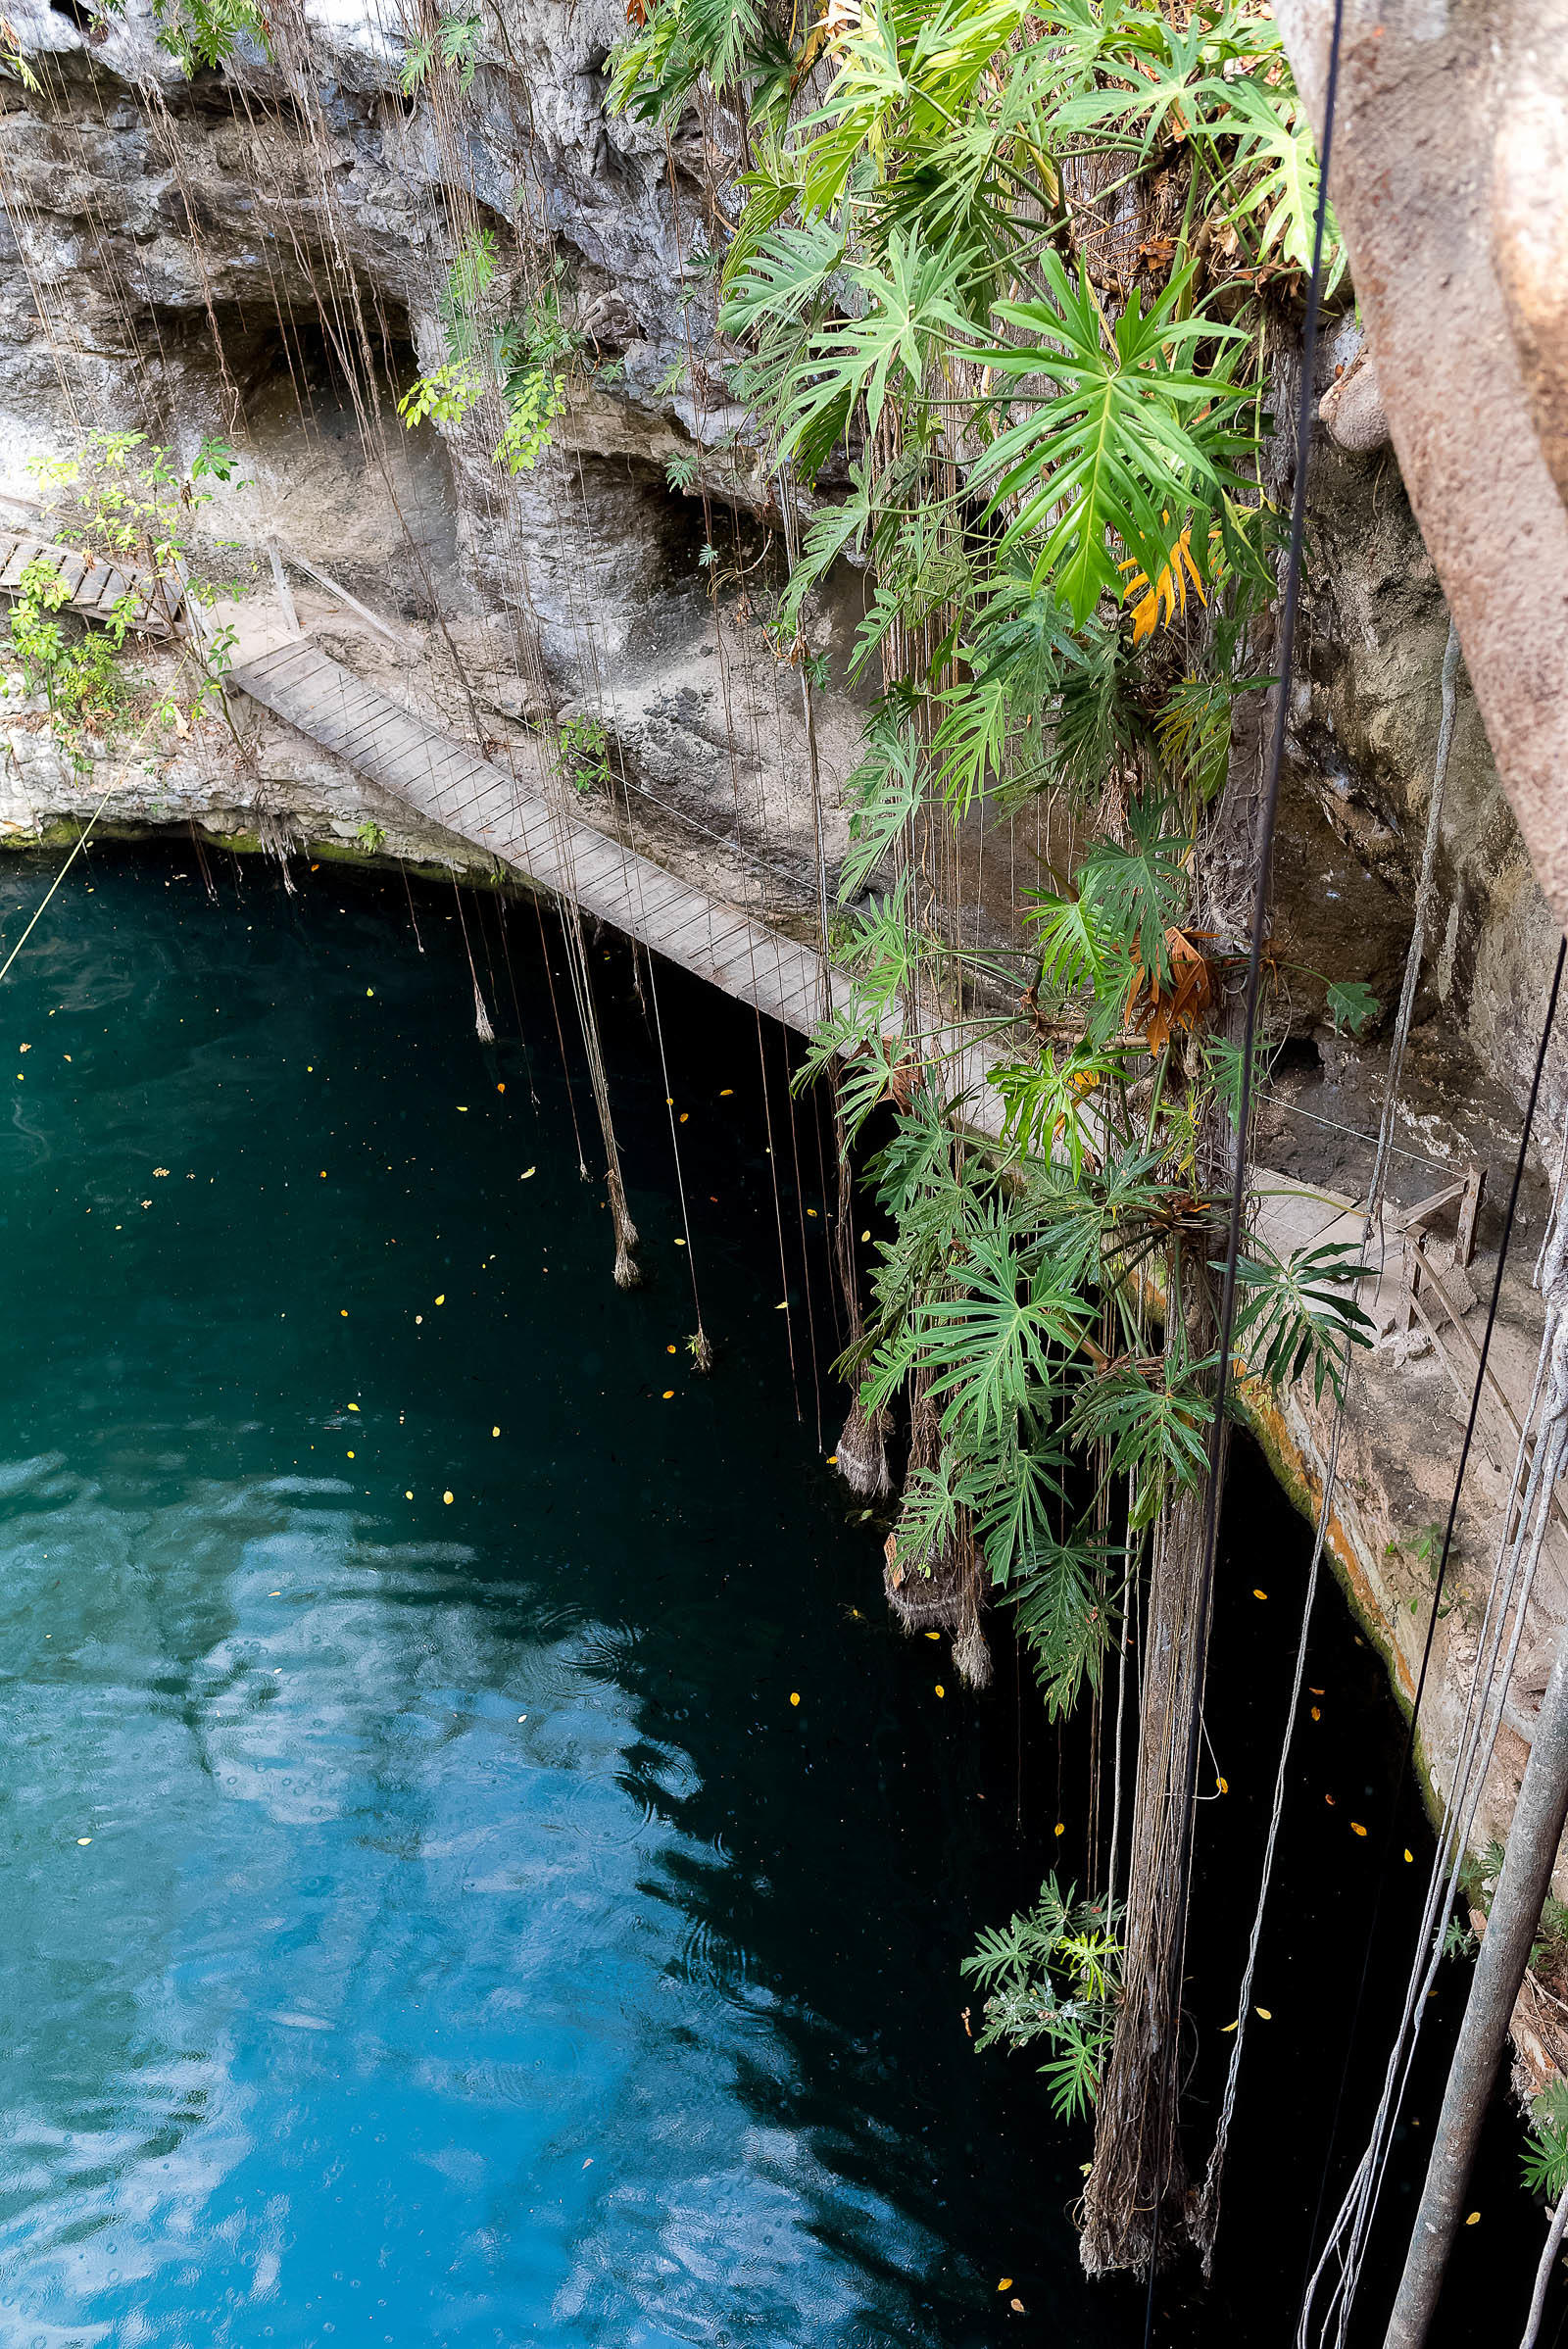 Ek Balam Mayan Archaeological Site and Mayan Cenote, Yucatán Mexico